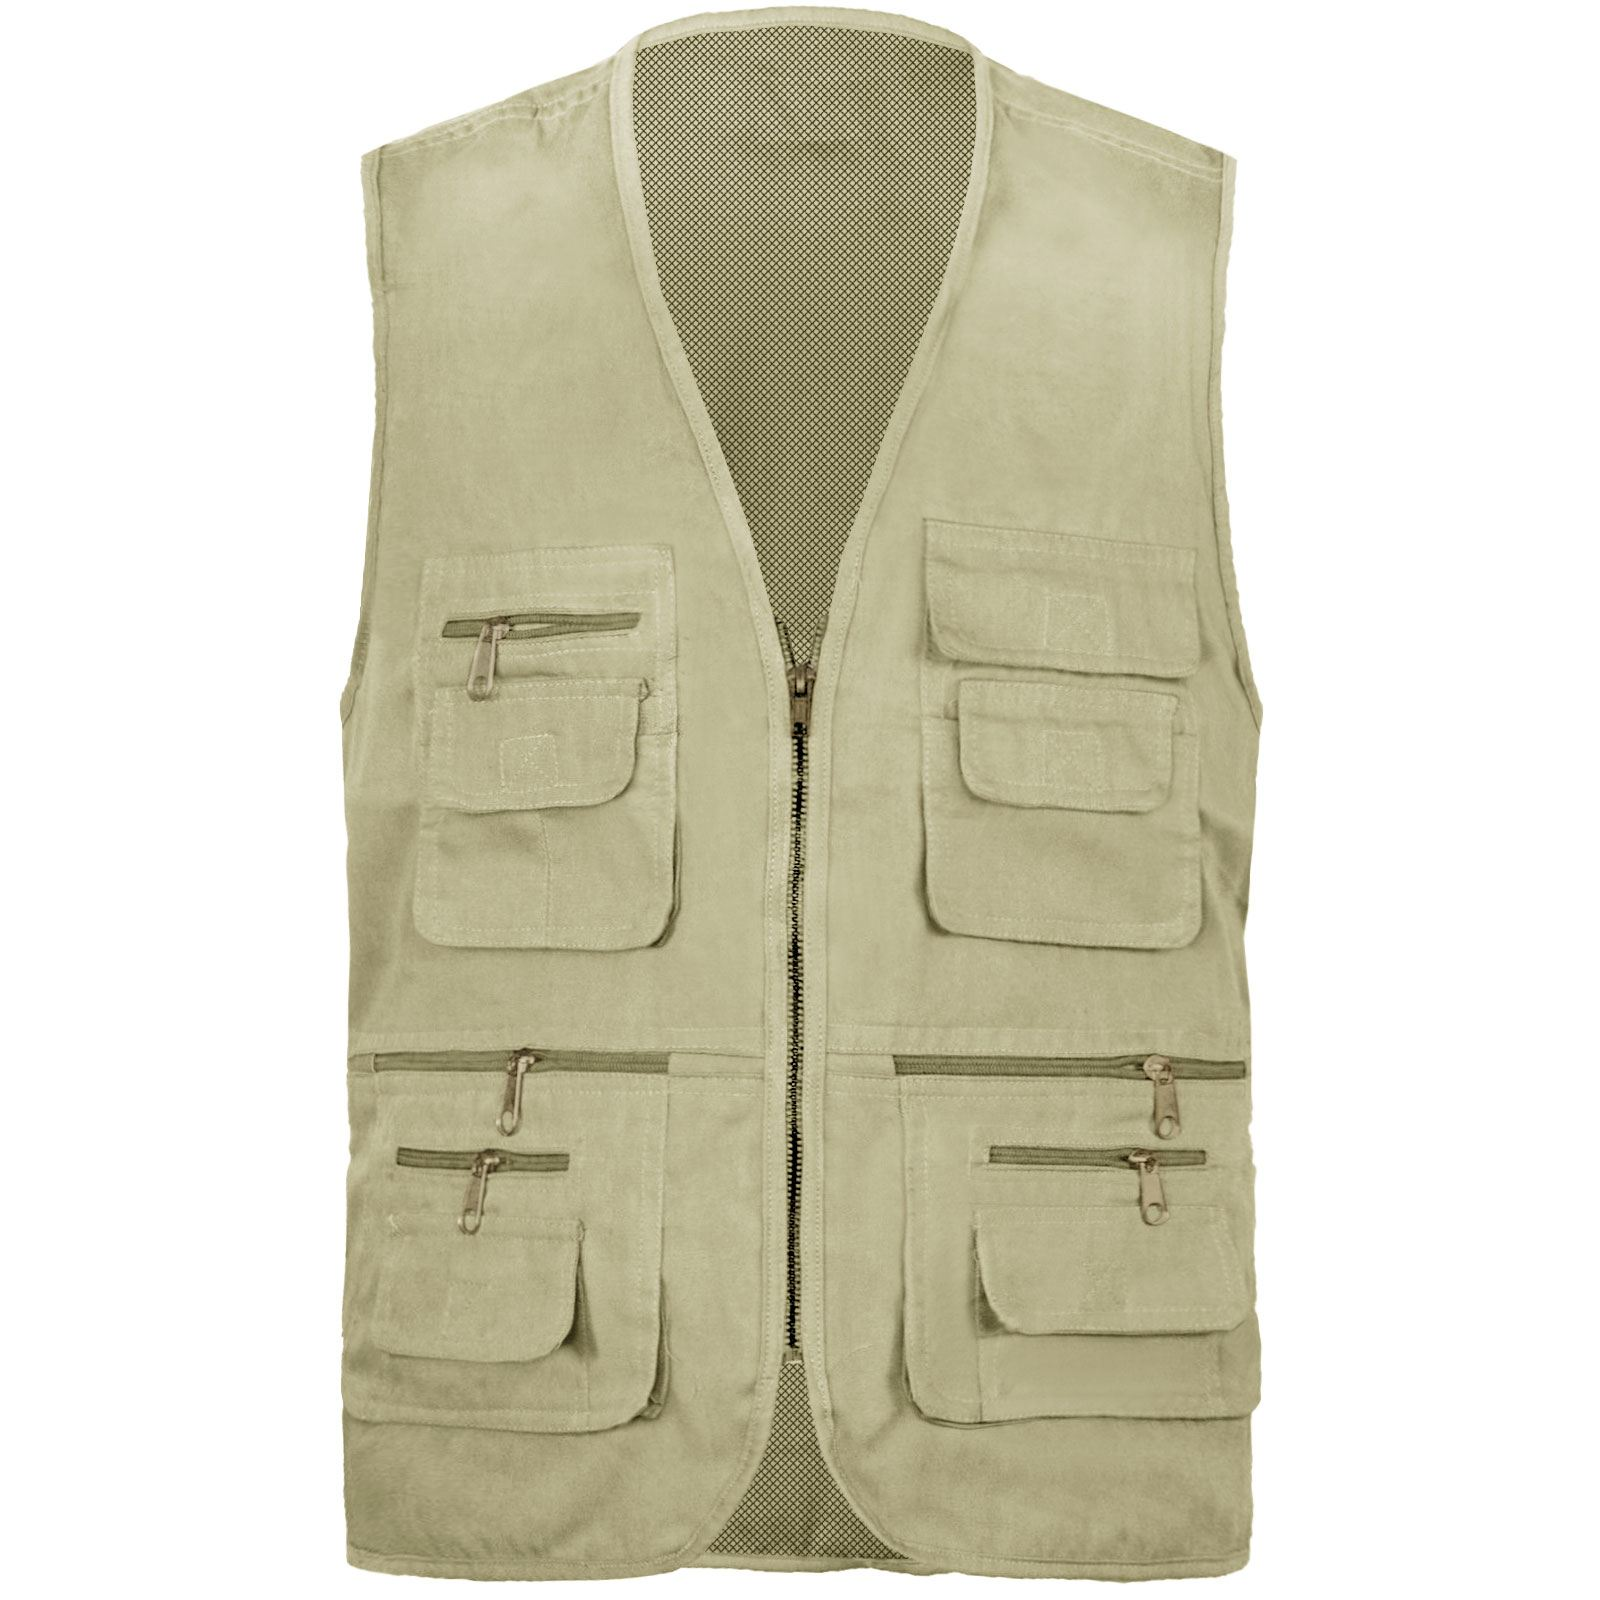 Mens gilet body warmer action waist coat country hunting for Best fishing vest